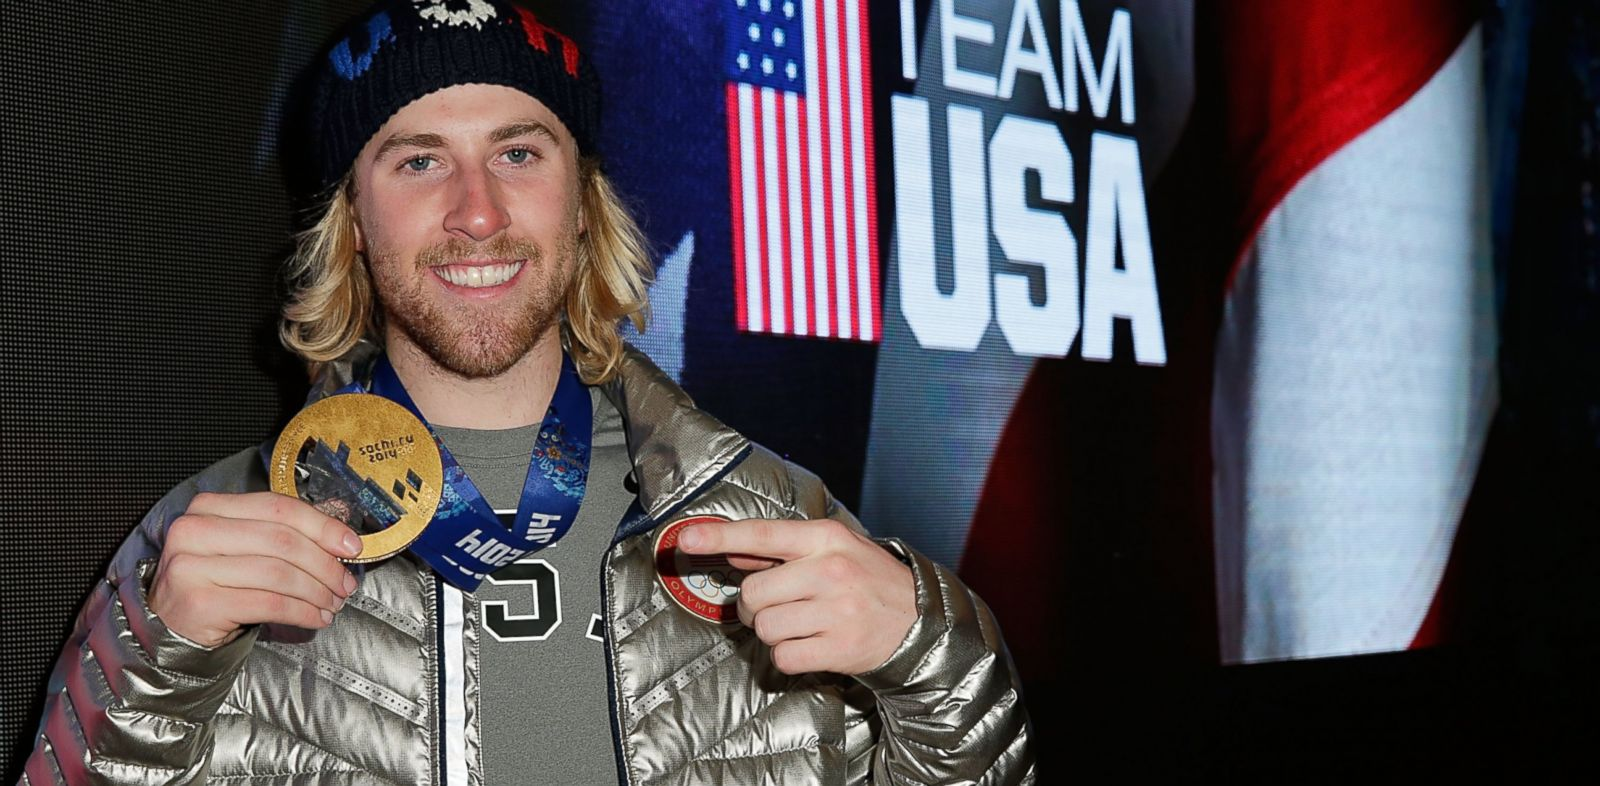 PHOTO: U.S. Olympian and gold medalist Sage Kotsenburg visits the USA House in the Olympic Village, Feb. 8, 2014, in Sochi, Russia.